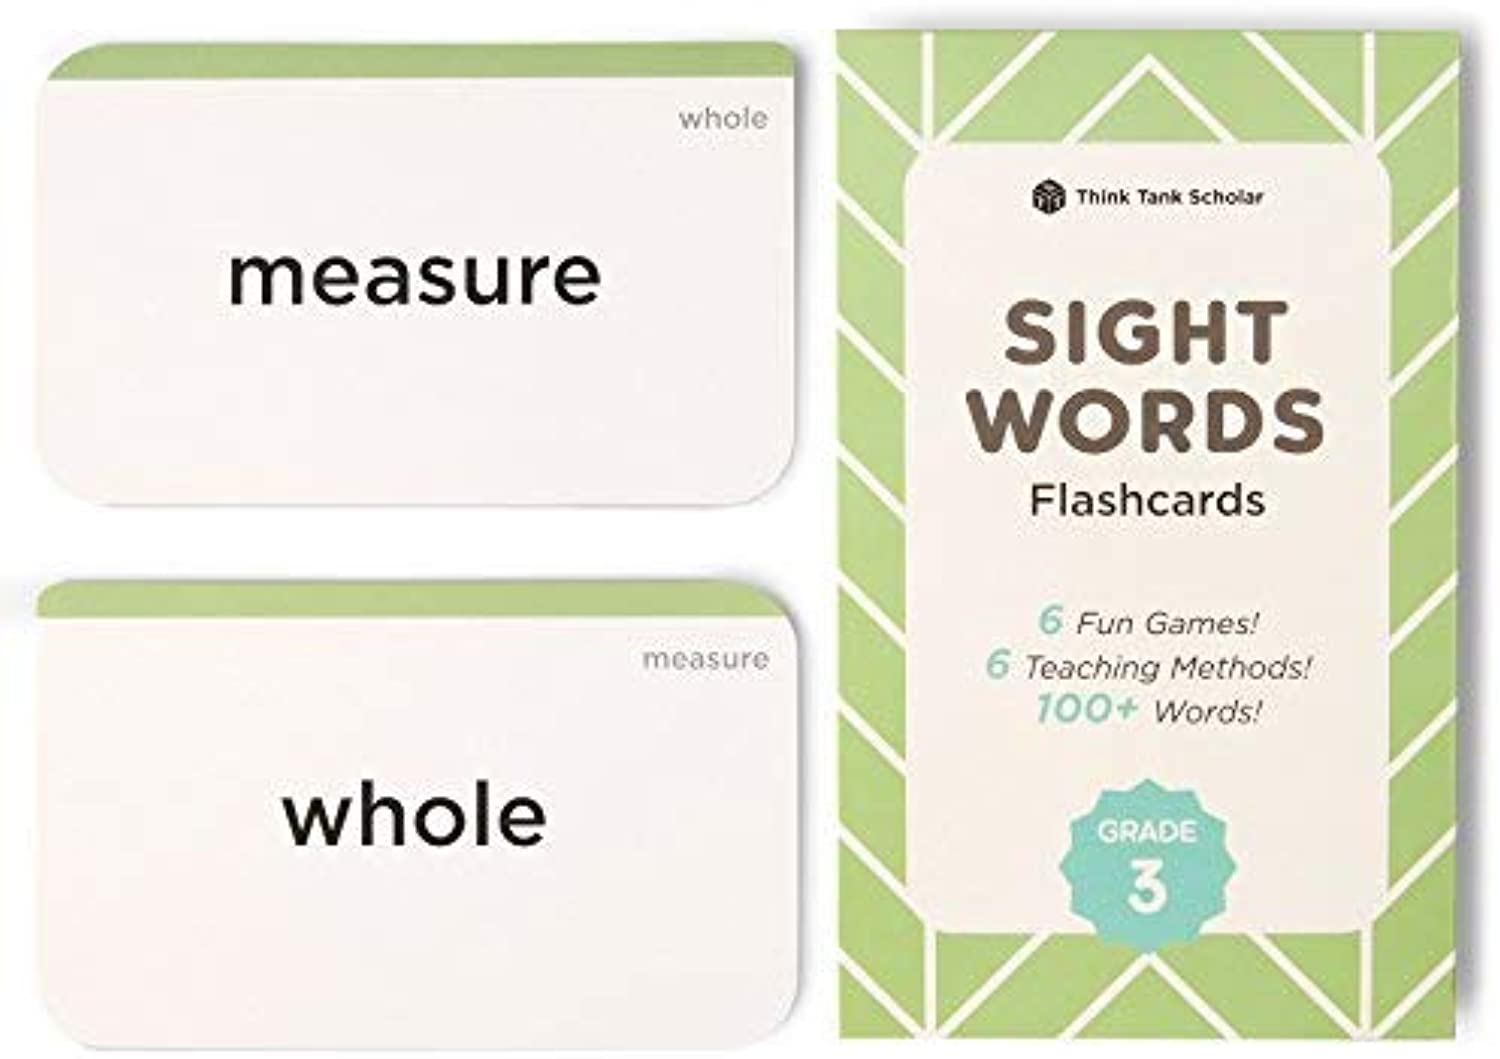 Think Tank Scholar 100+ Third (3rd) Grade Sight Words Flash Cards for Readers Ages 8 to 9 Years Old